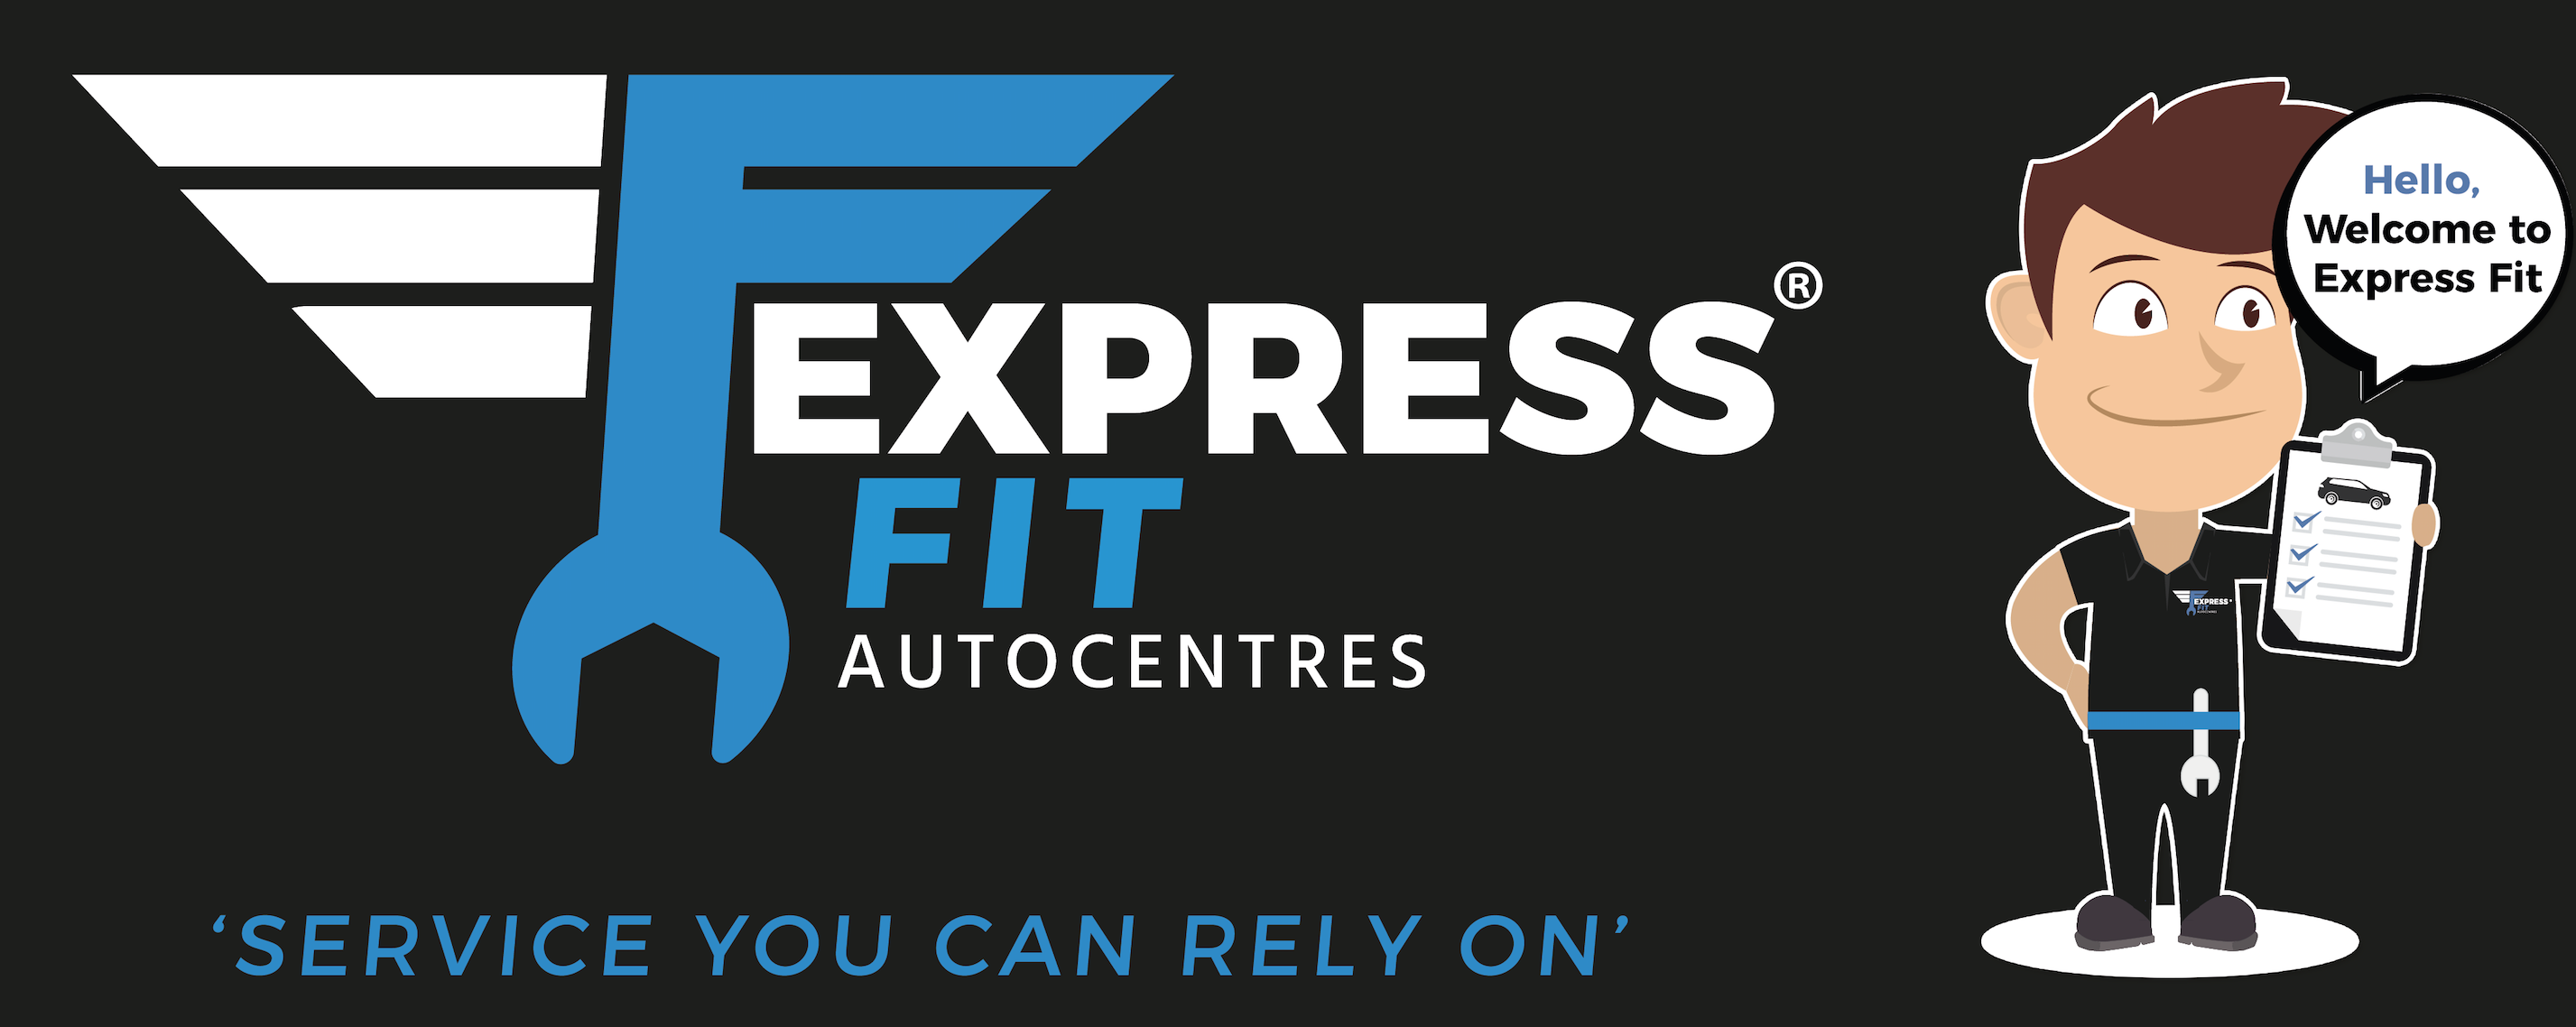 Read Express Fit Autocentres Reviews